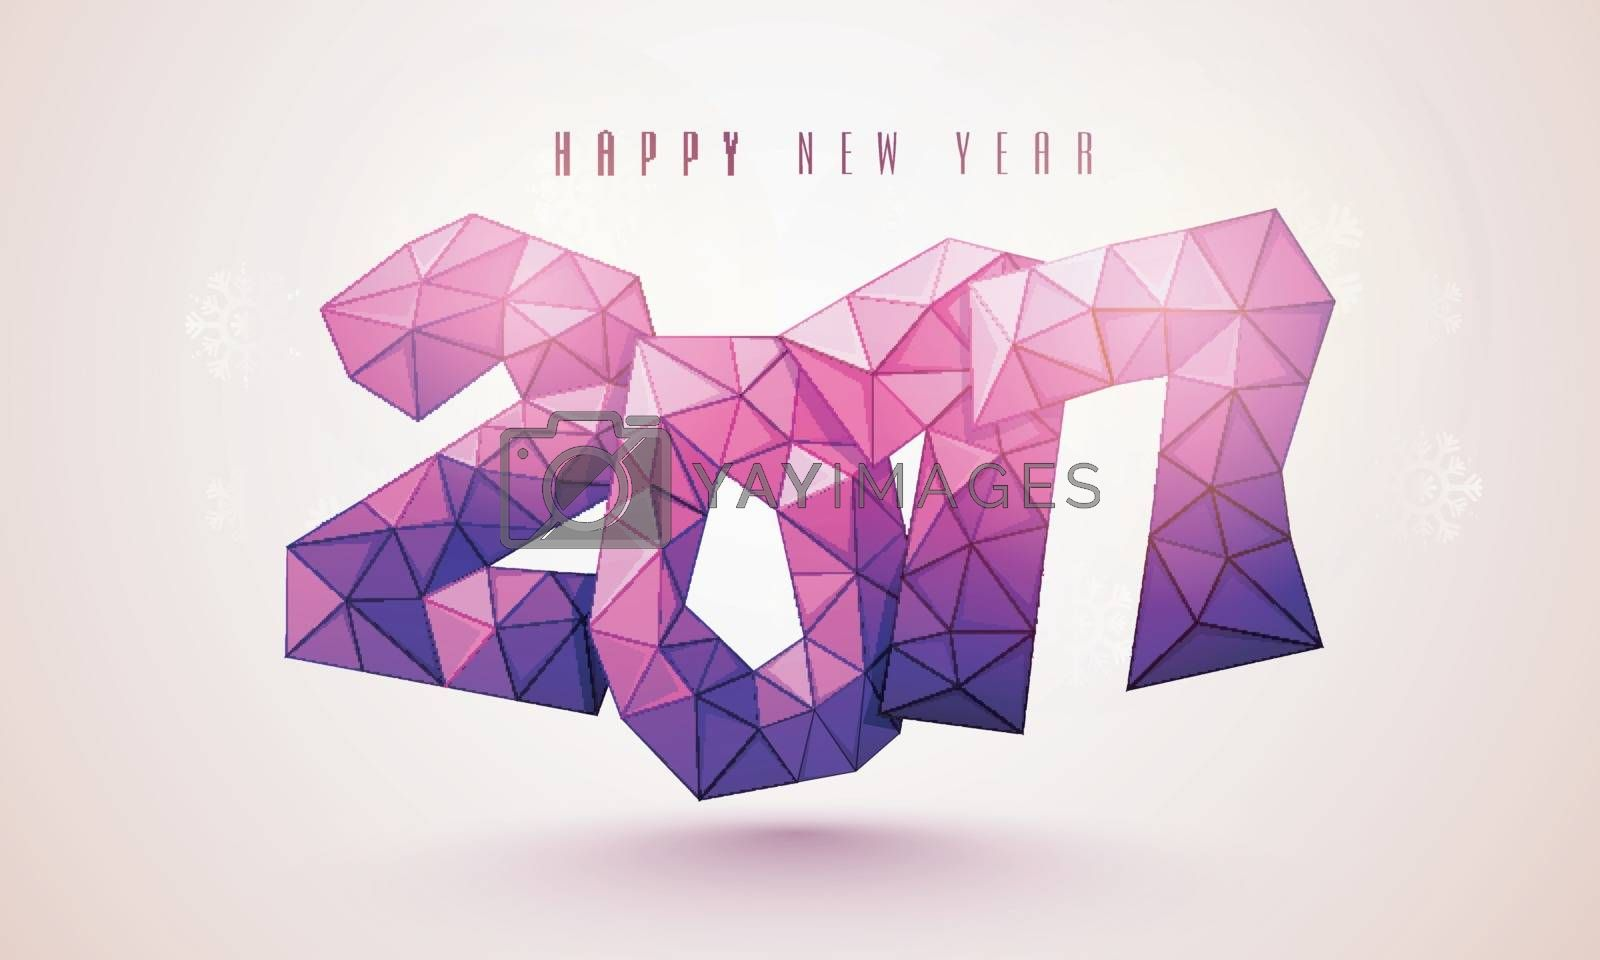 Creative low-poly style text 2017 on shiny background for Happy New Year celebration.